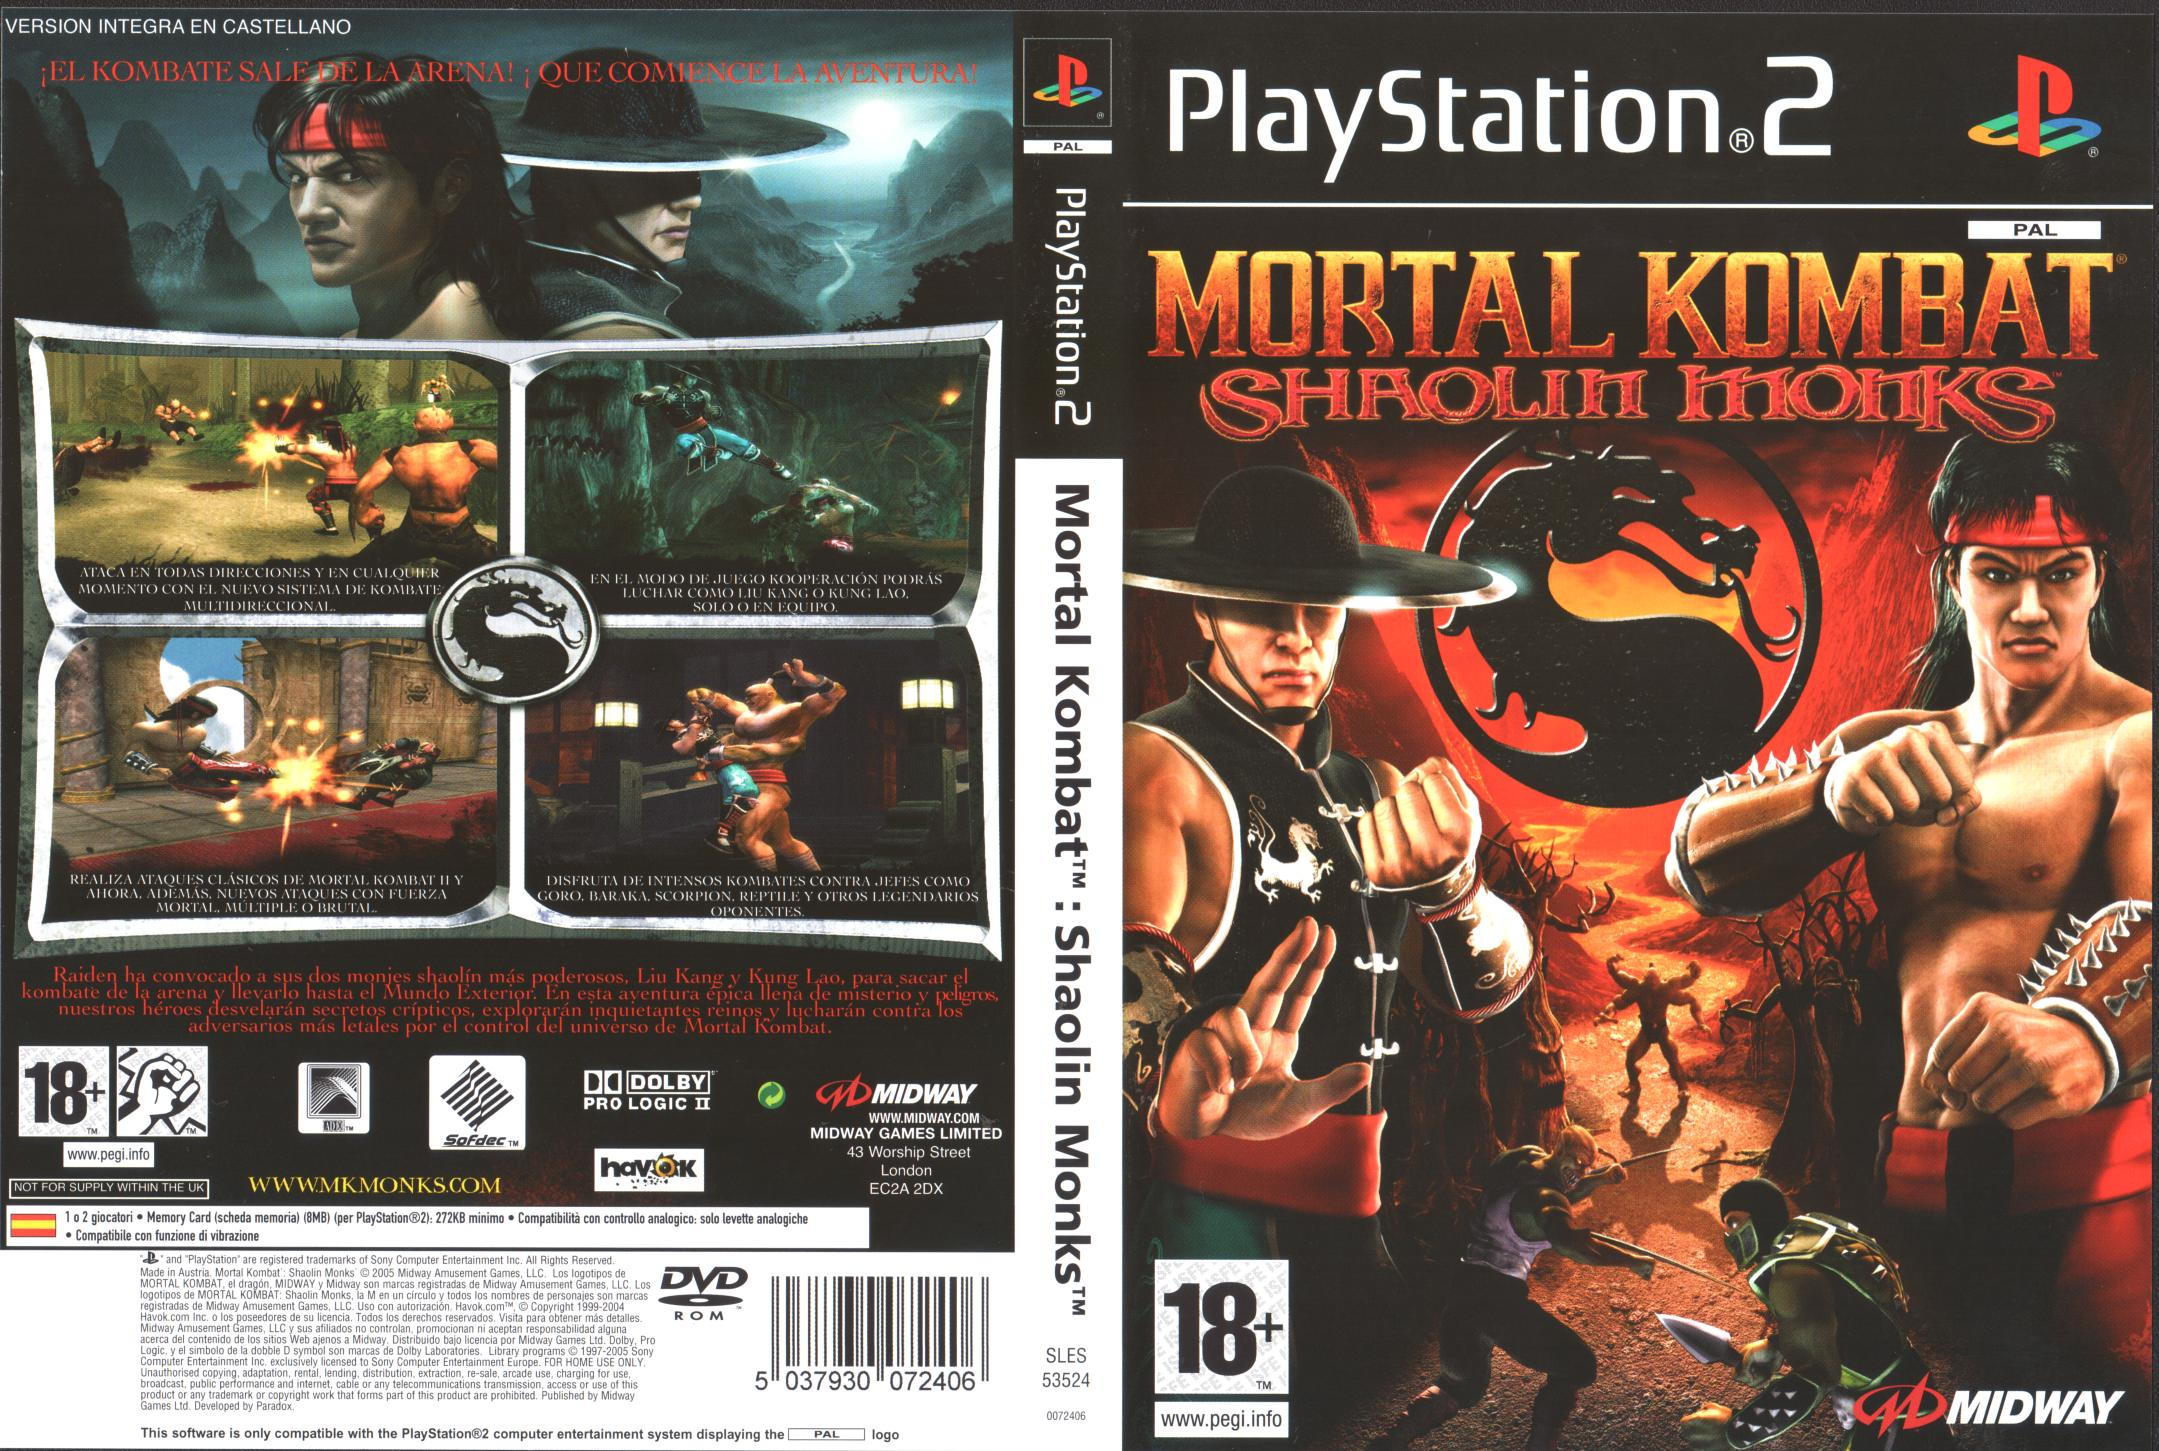 [Aporte] Mortal Kombat Shaolin Monks [PAL] [ESP] [JF]